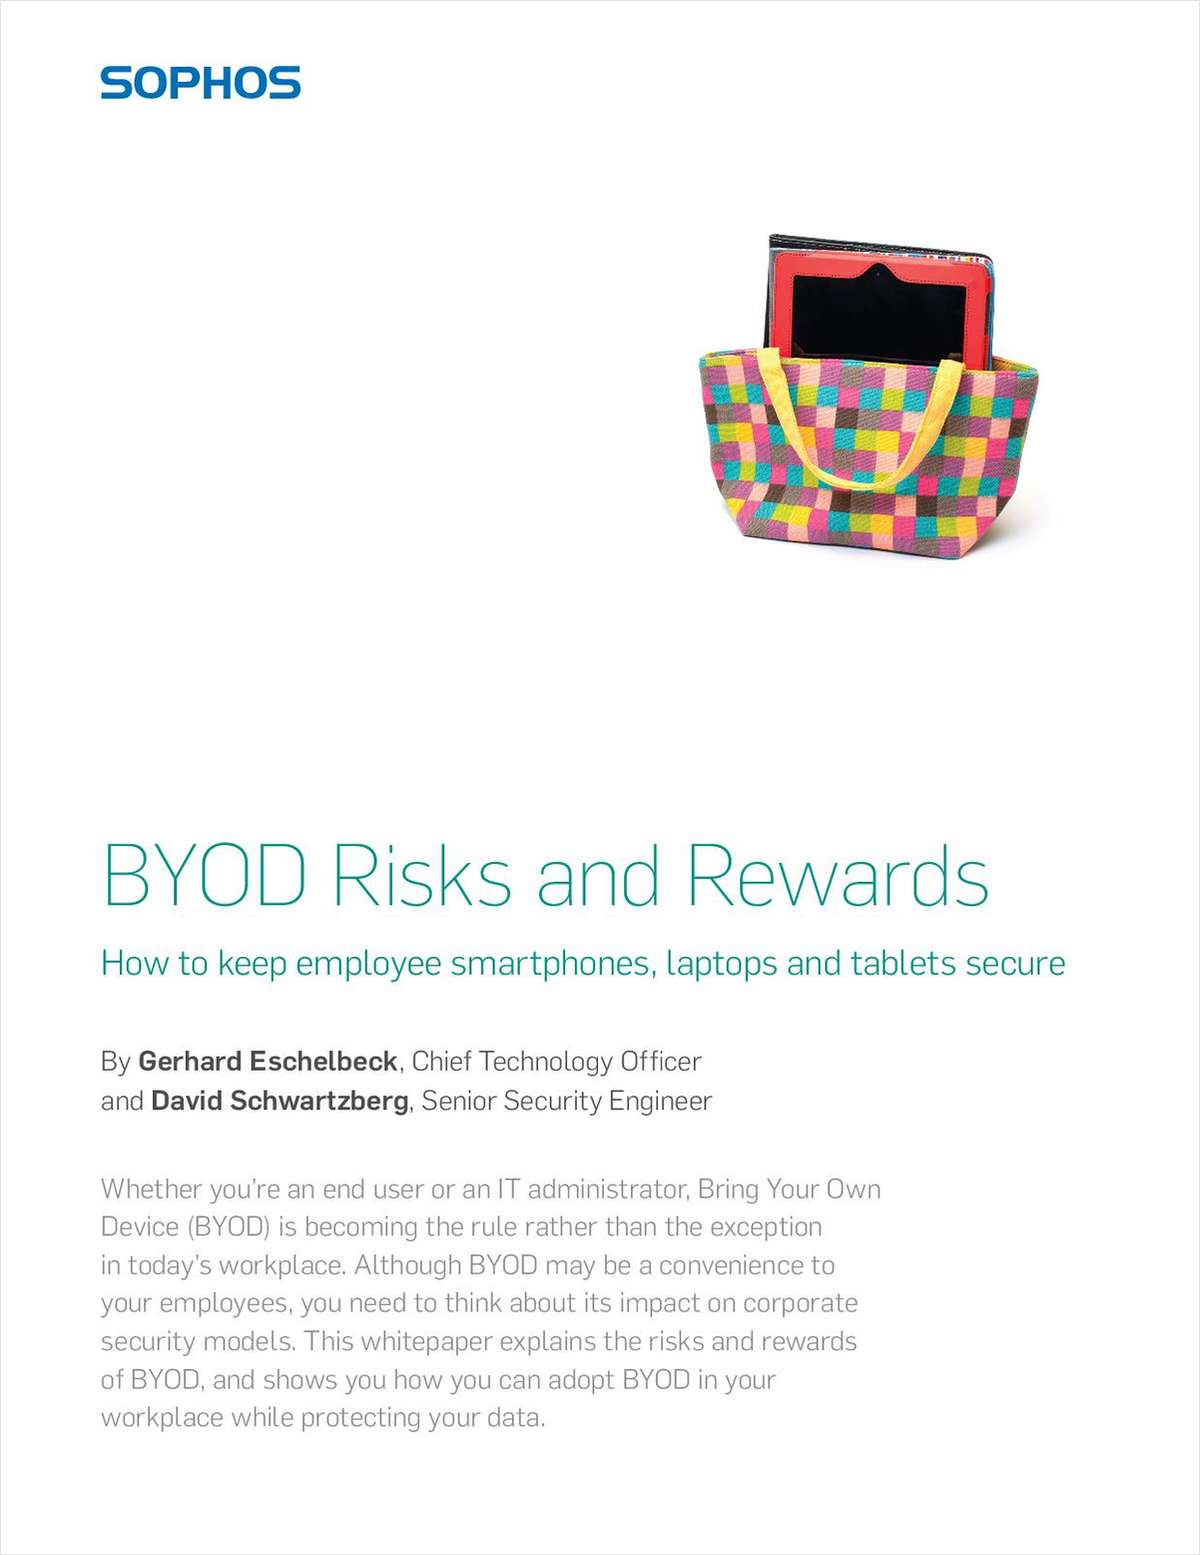 BYOD Risks and Rewards